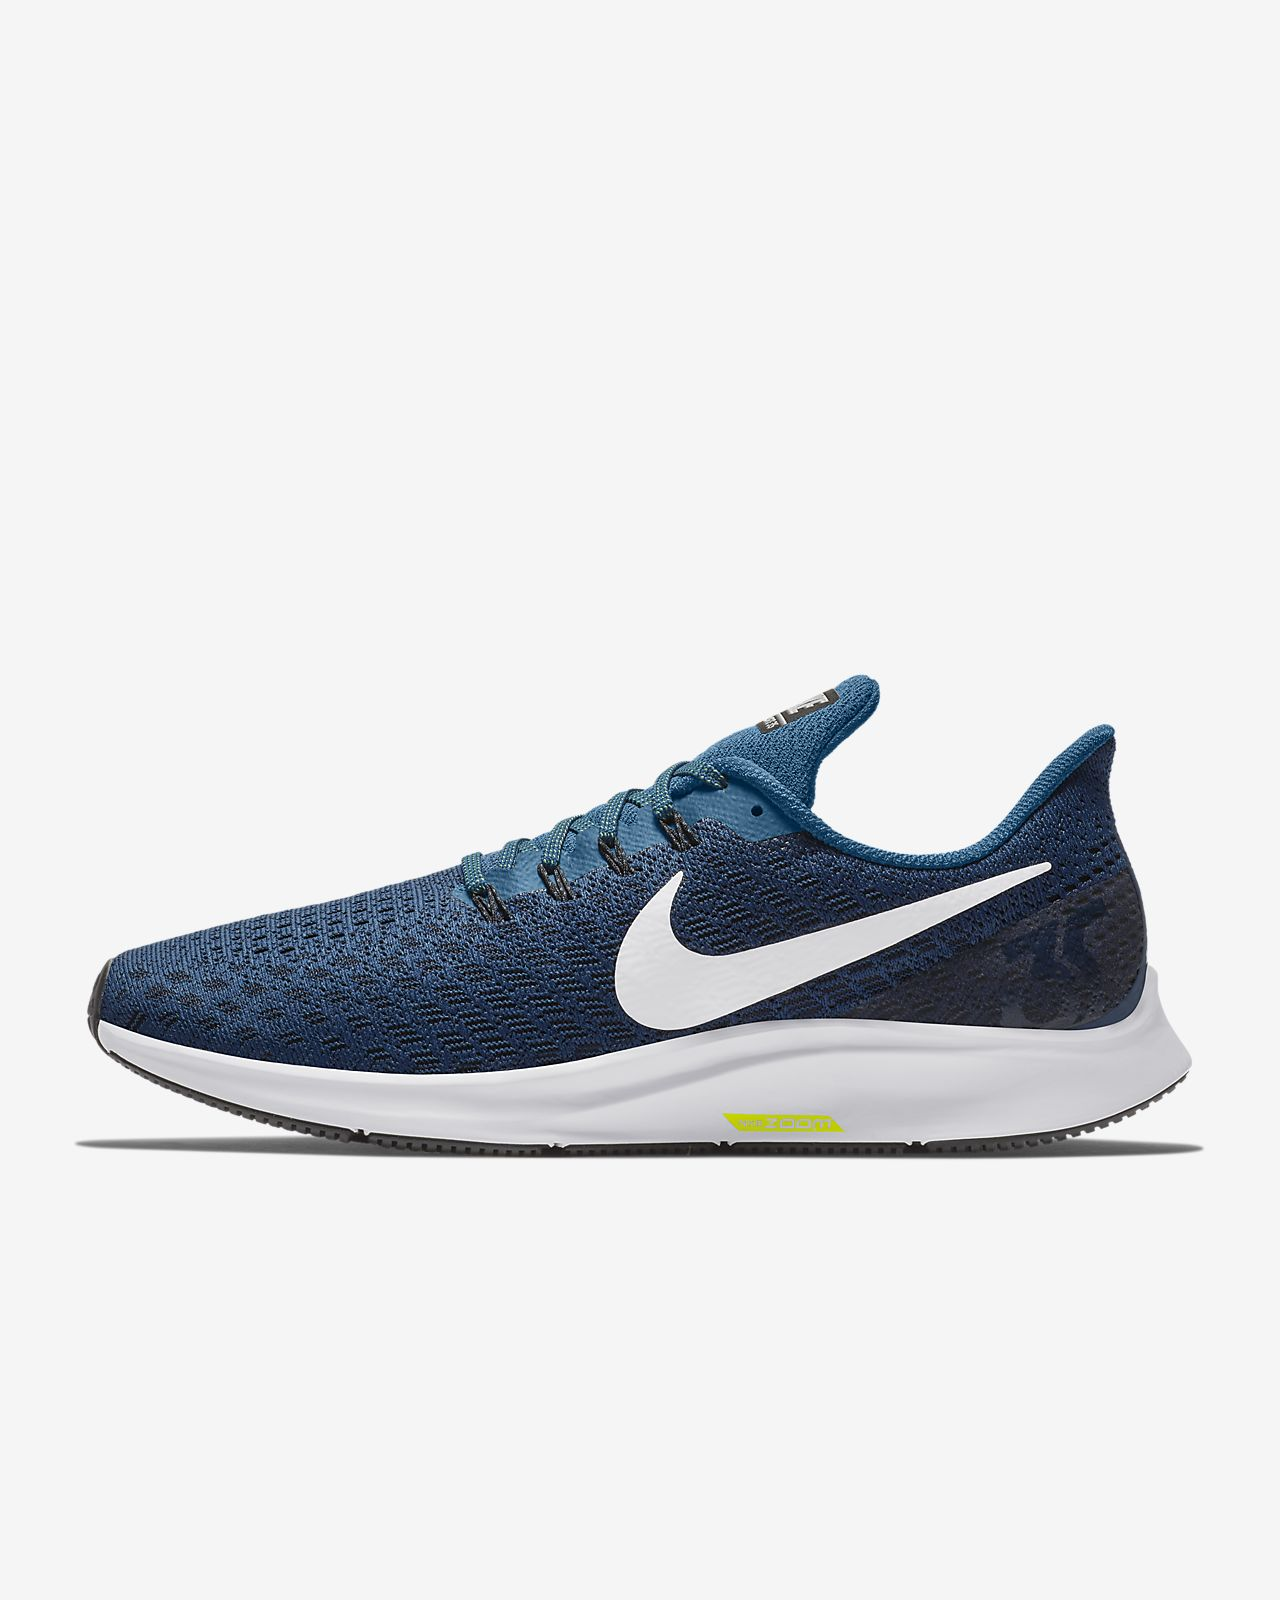 promo code eecd1 c75b0 ... Chaussure de running Nike Air Zoom Pegasus 35 pour Homme